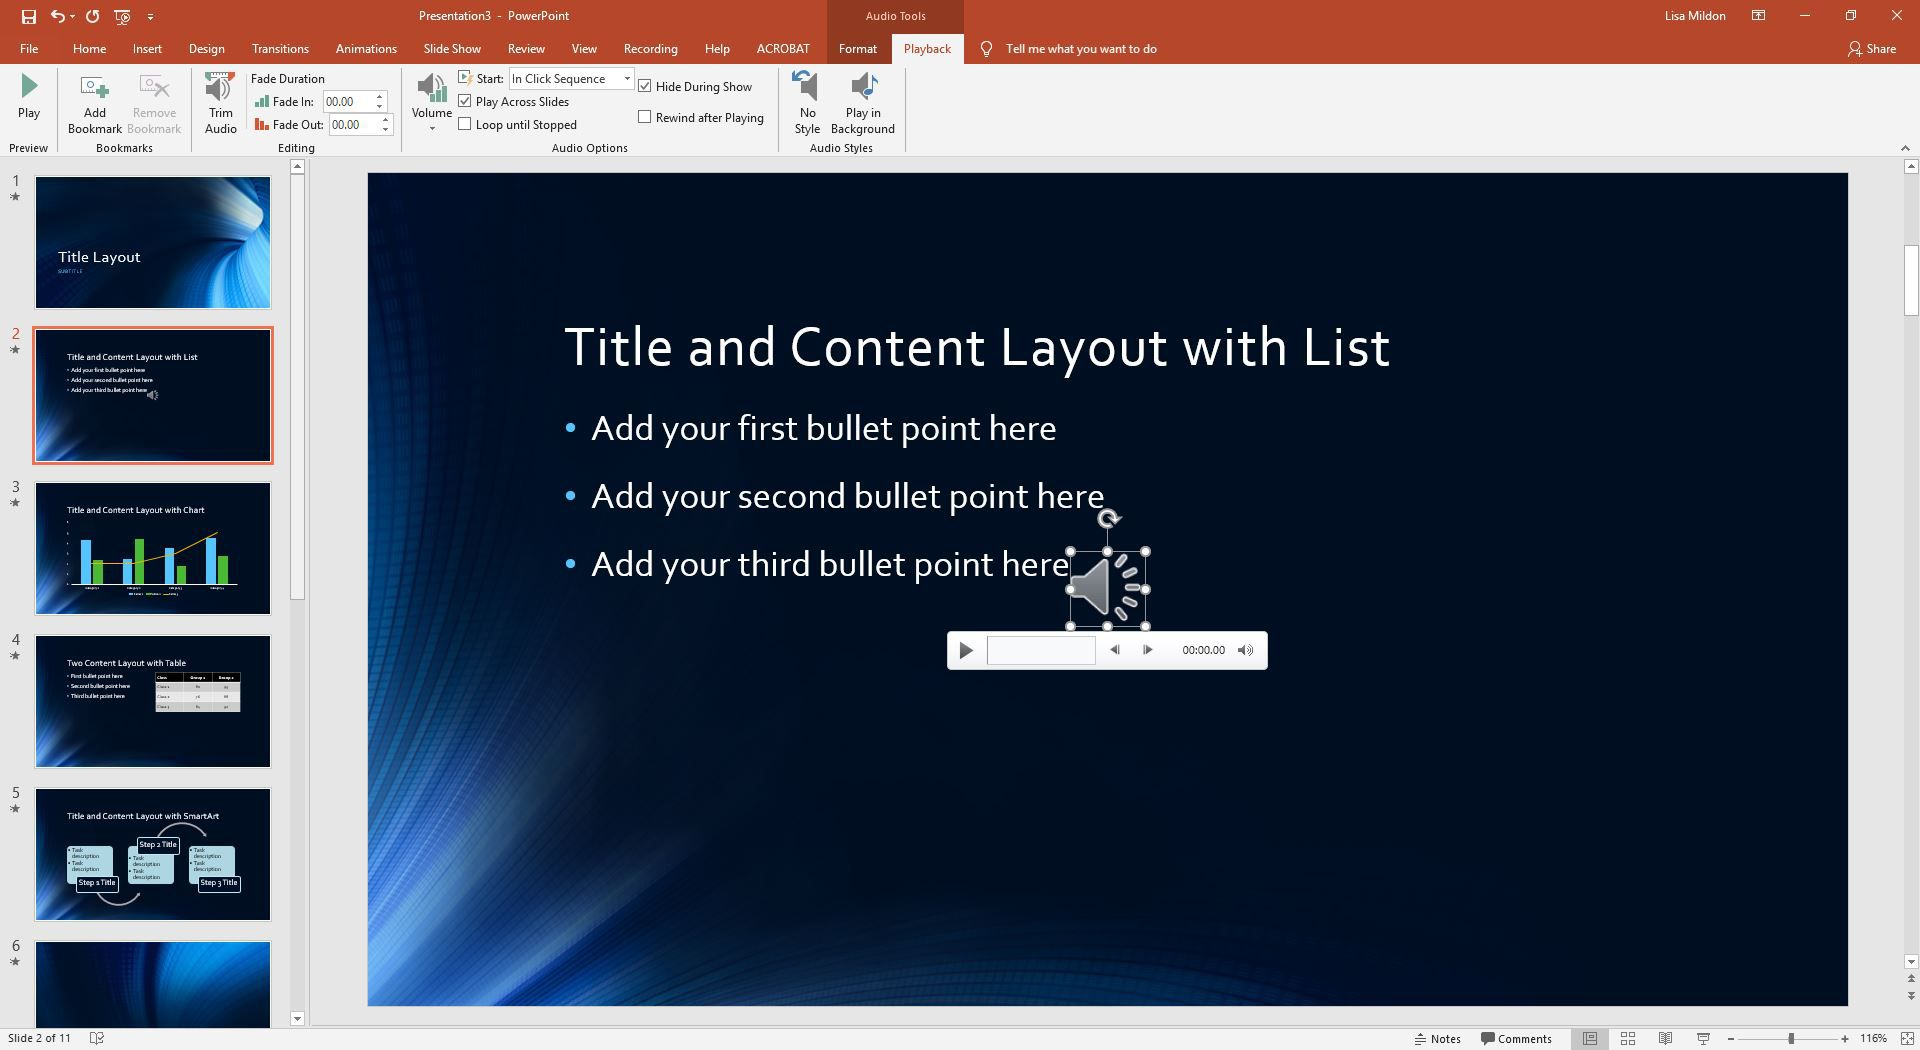 Edit Music, Sound, or Other Audio Settings in PowerPoint